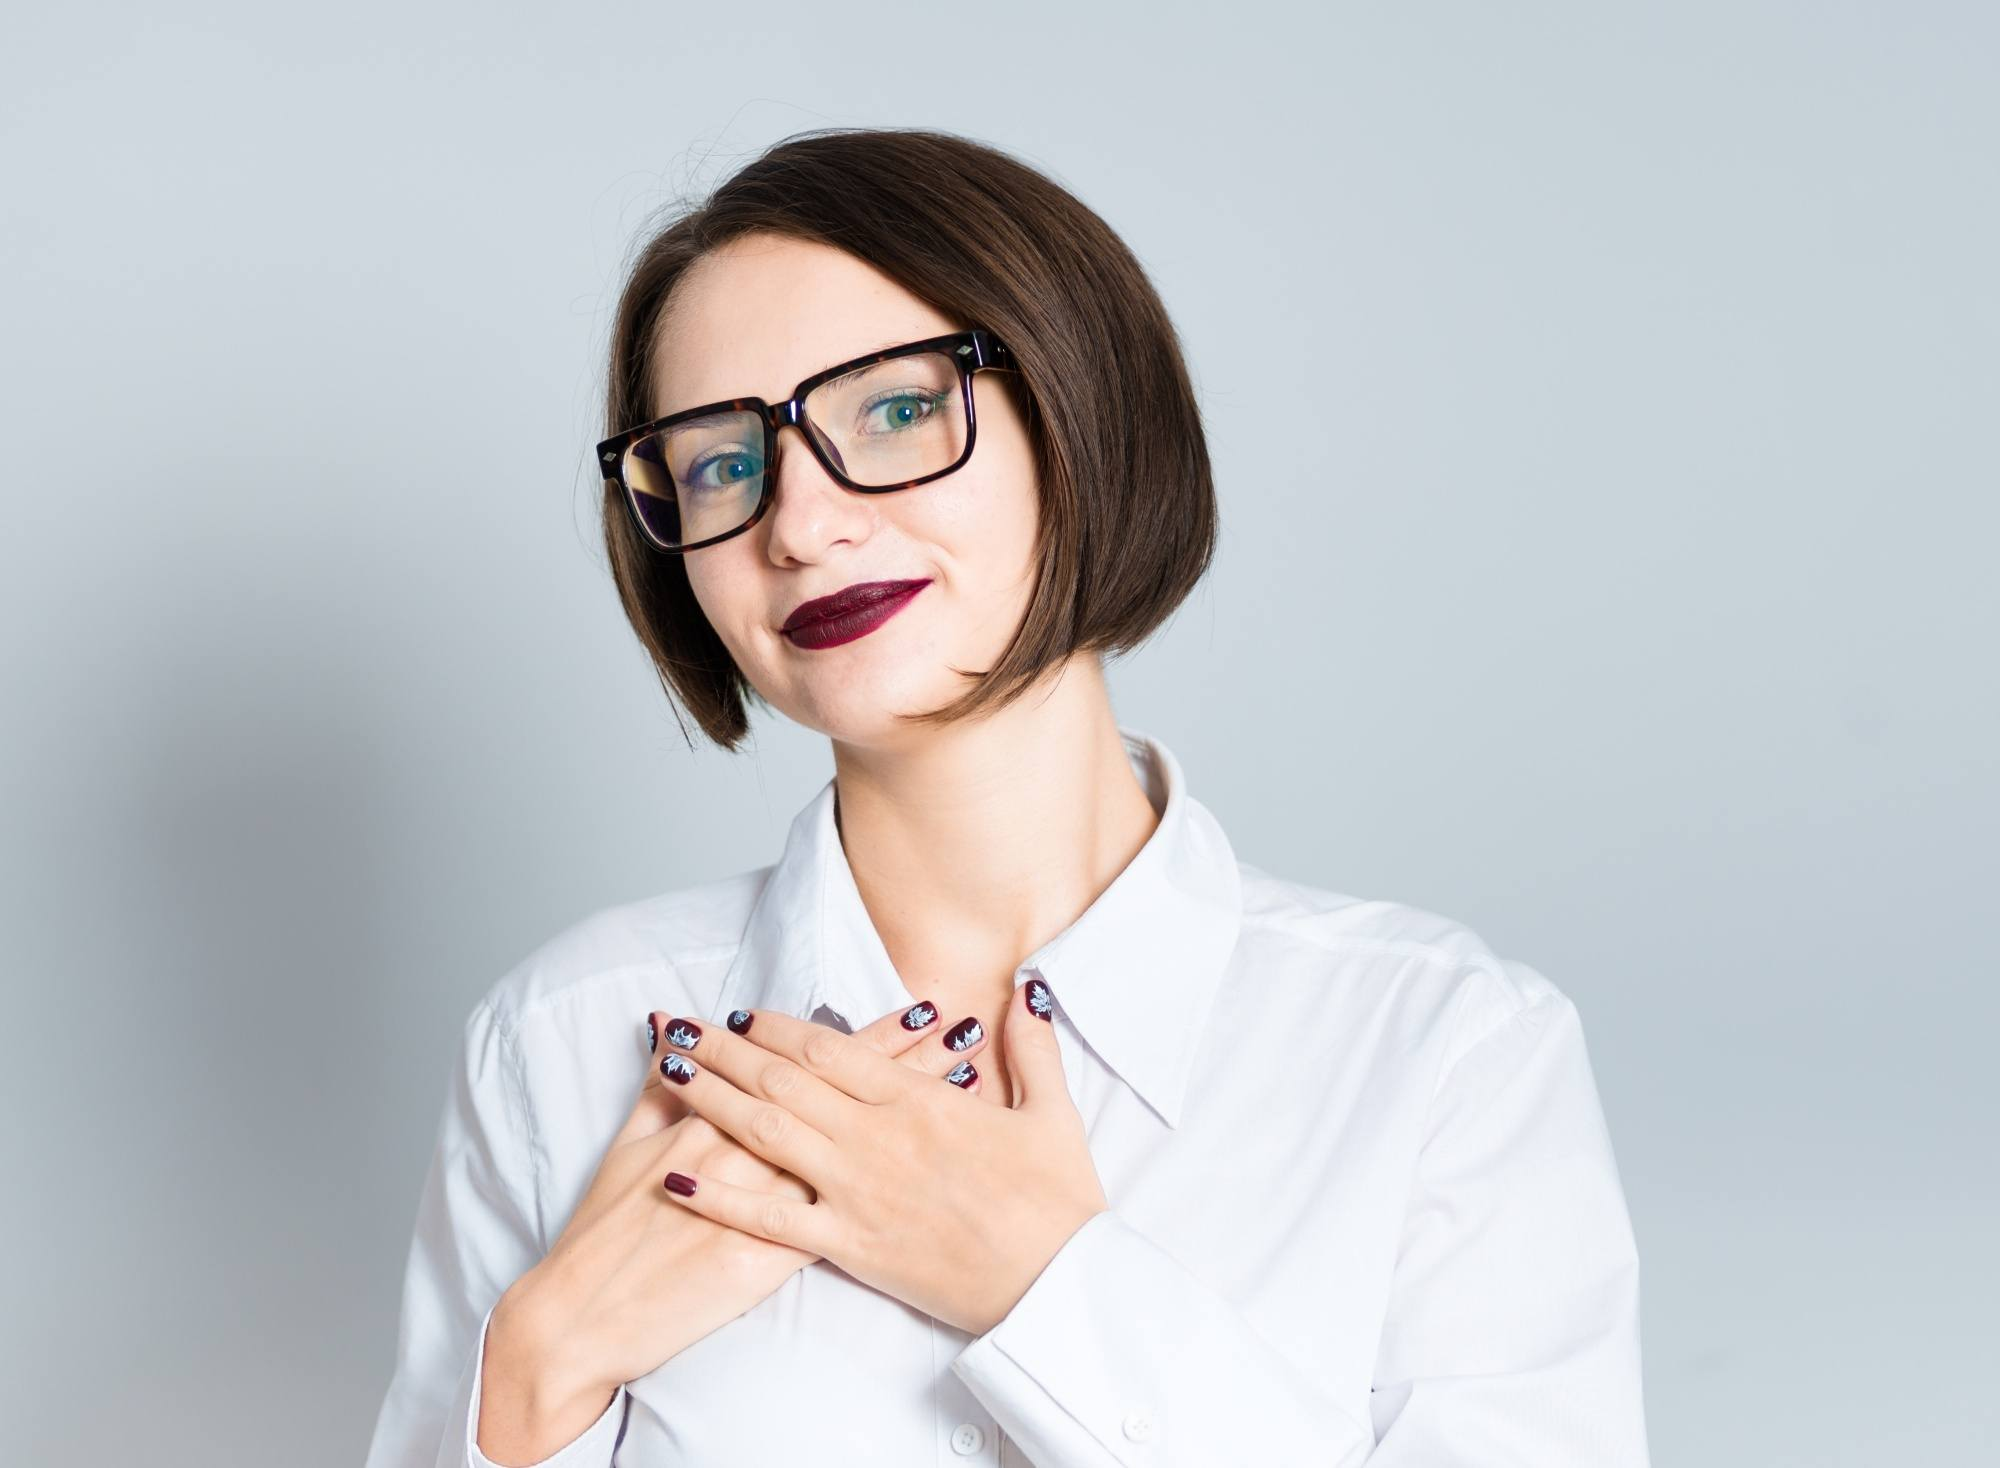 Chin length hairstyles: Woman with short dark brown hair wearing eyeglasses and white blouse